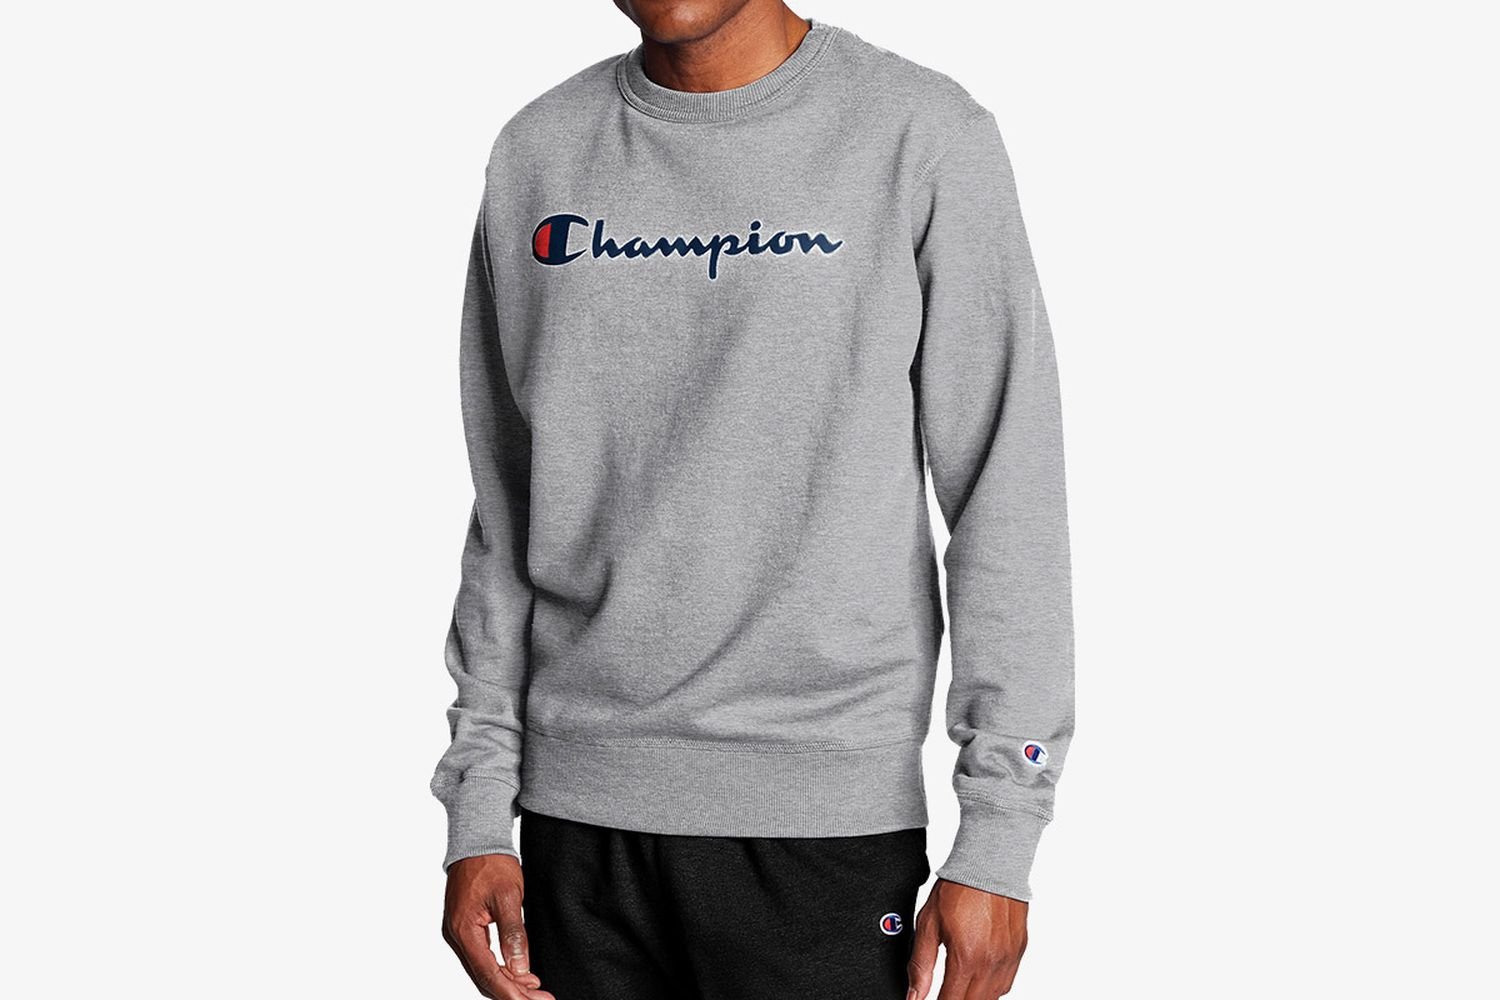 Powerblend Graphic Crewneck Sweatshirt